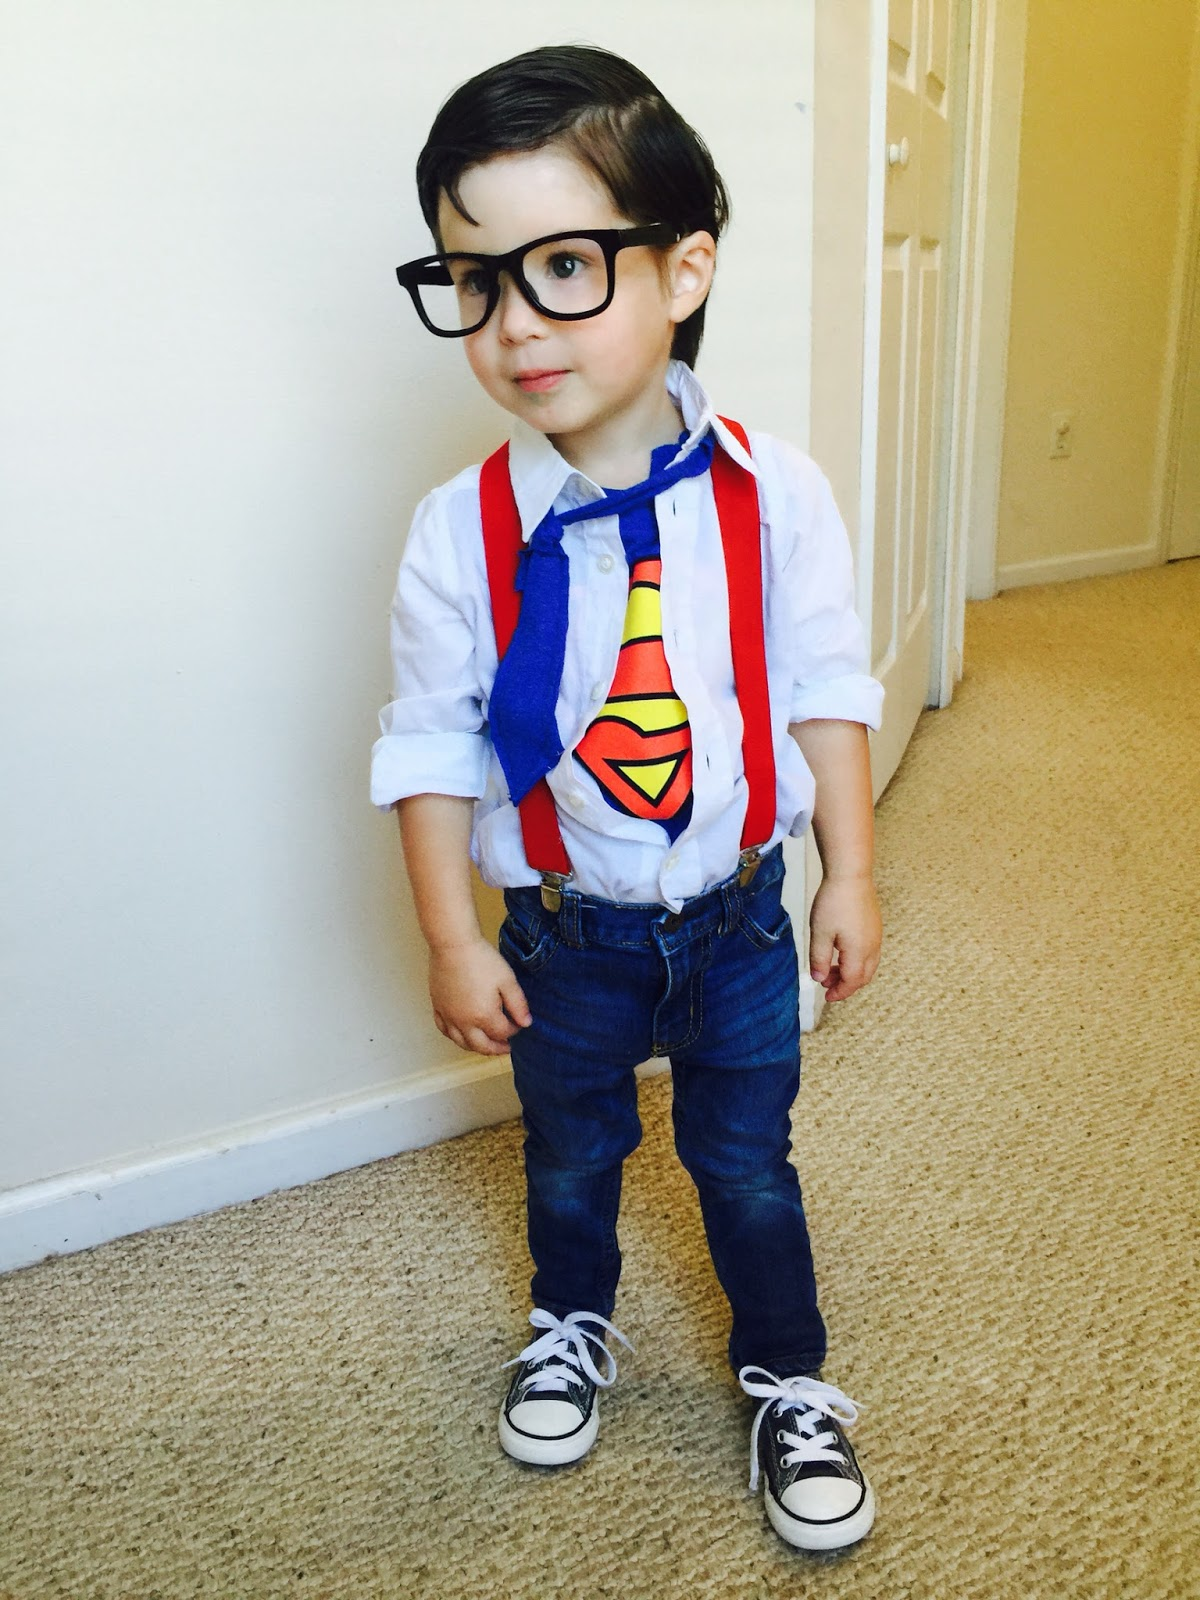 HALLOWEEN-COSTUME-DISFRACES-KIDS-NIÑOS-DIY-MAMAYNENE-SUPERMAN